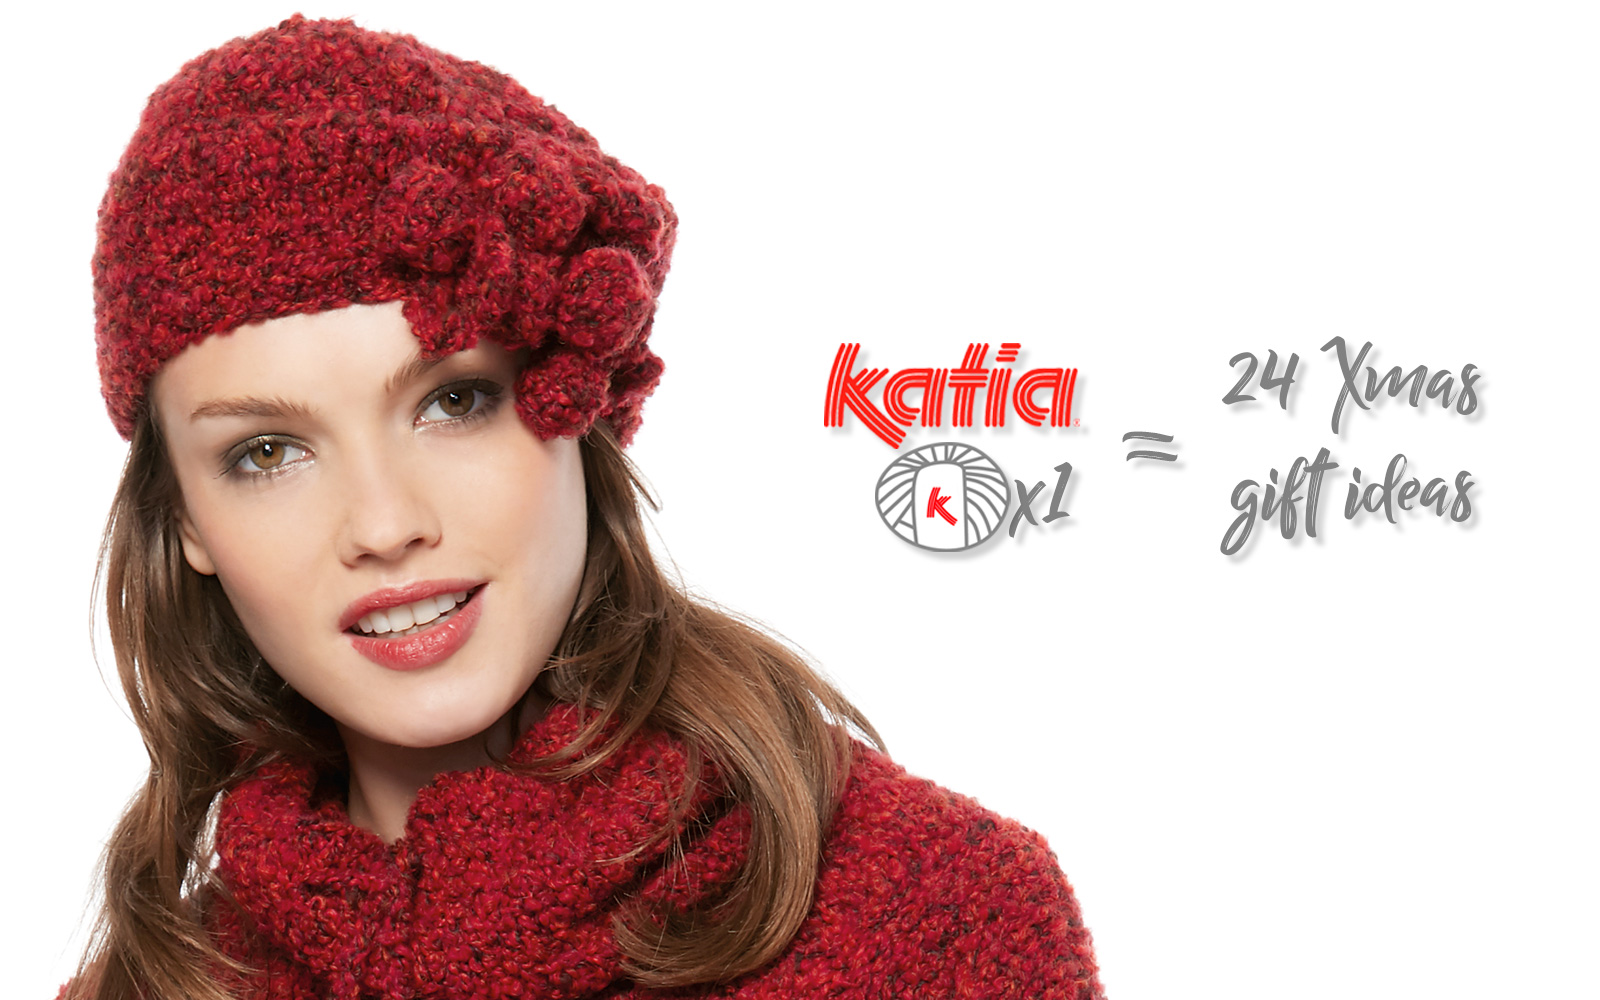 2fb563f2342 24 handmade Christmas gift ideas each made with only 1 ball of Katia yarn